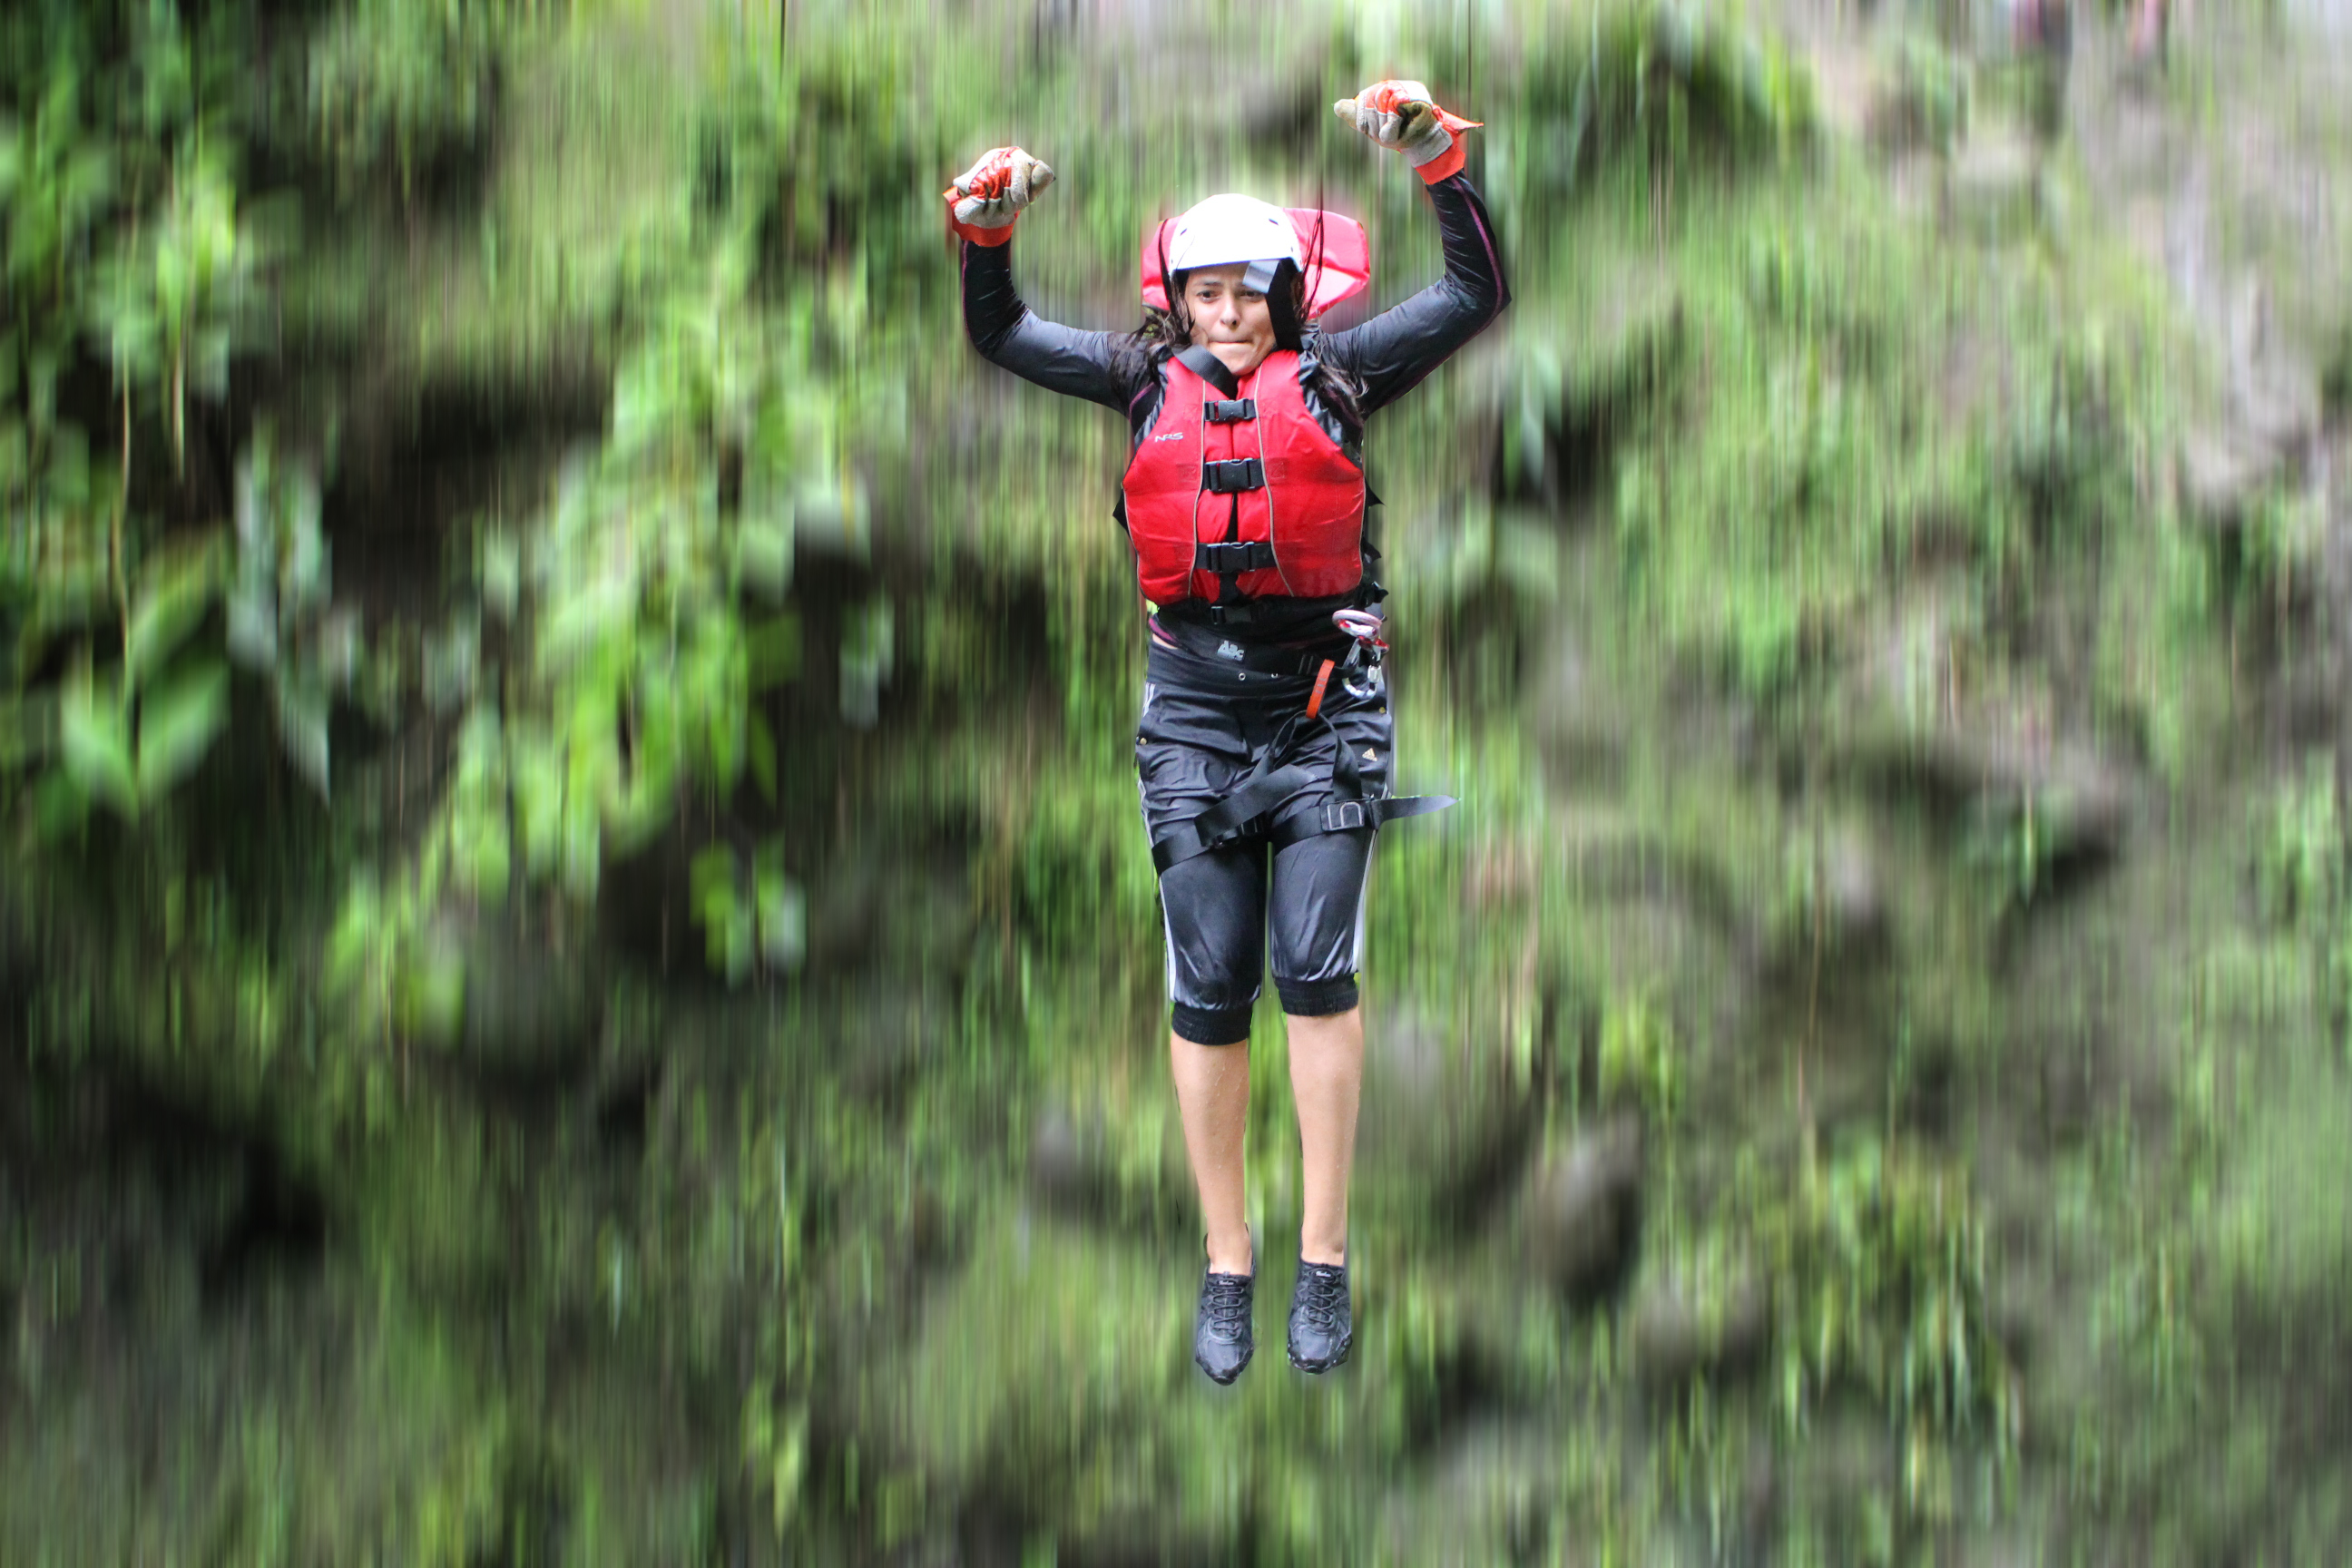 Go over your limits! Gravity Falls Costa Rica!